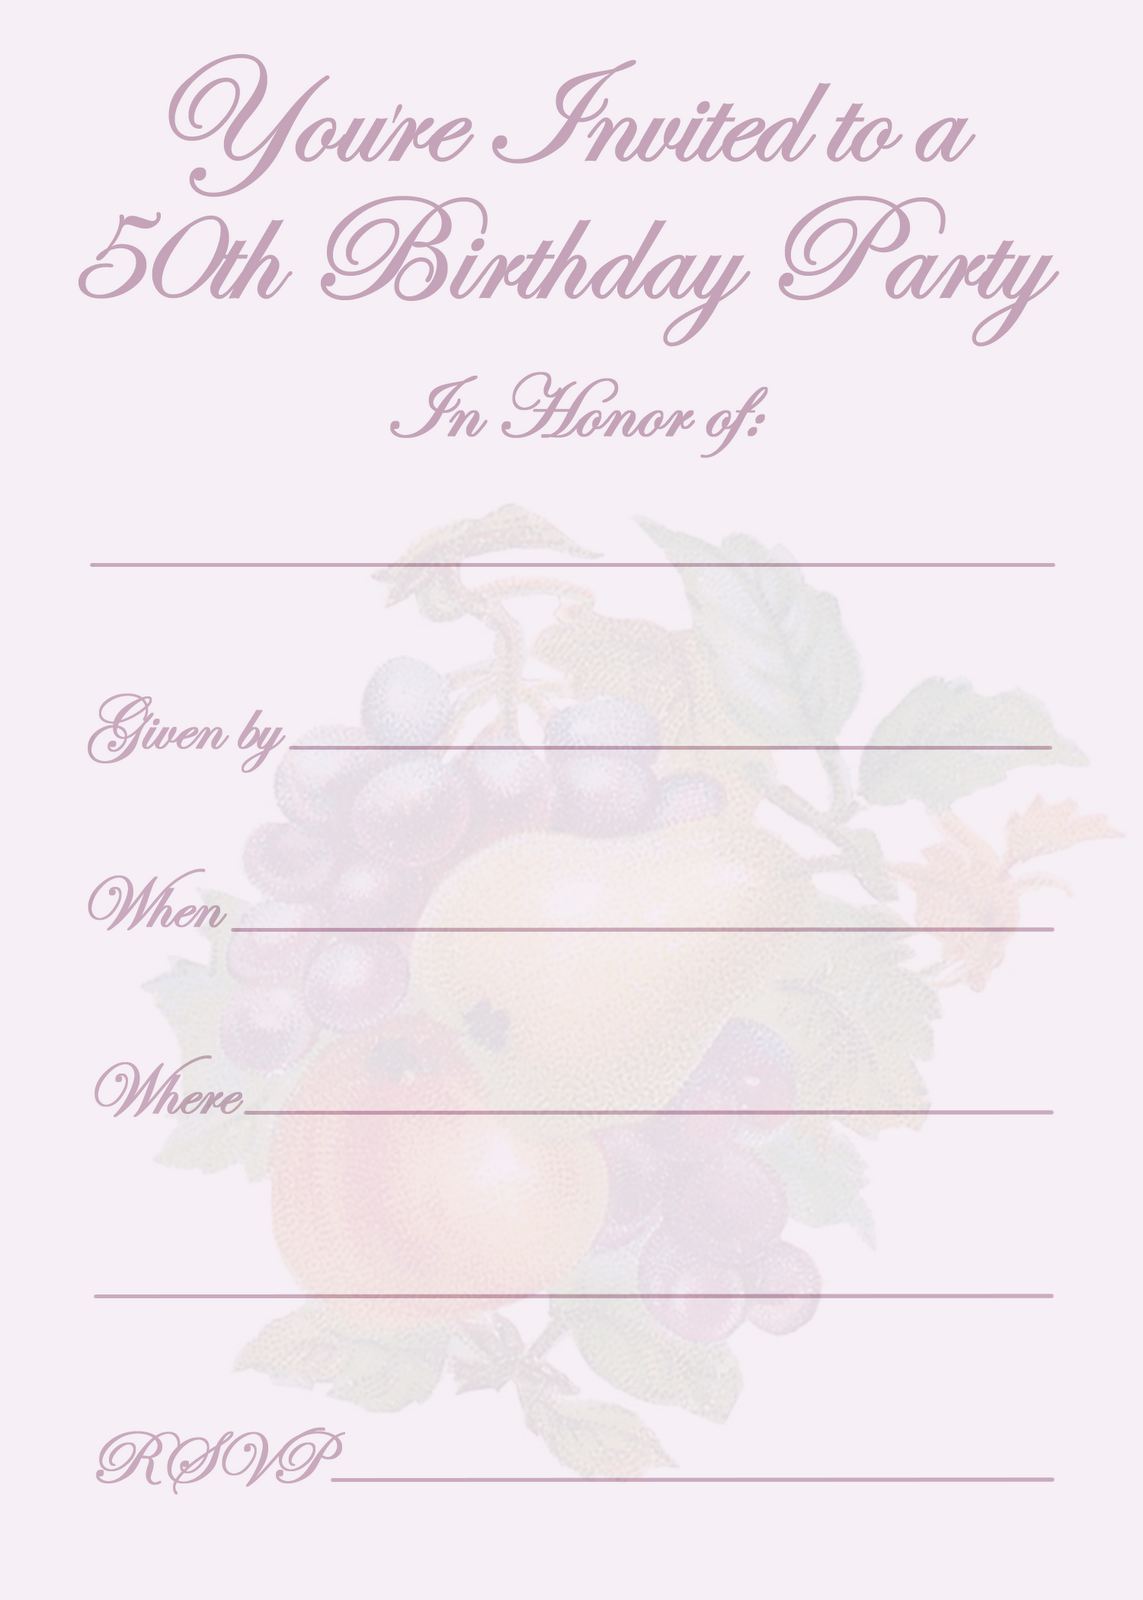 Nice 50th birthday party invitation templates free printable nice 50th birthday party invitation templates filmwisefo Images